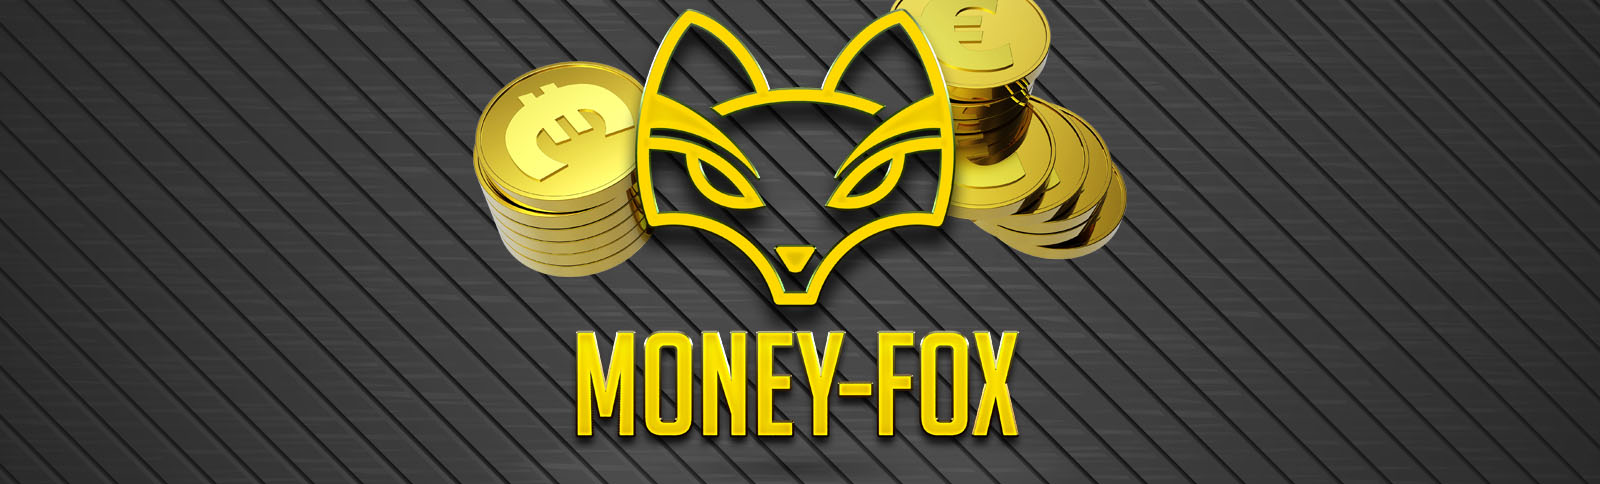 Money-Fox